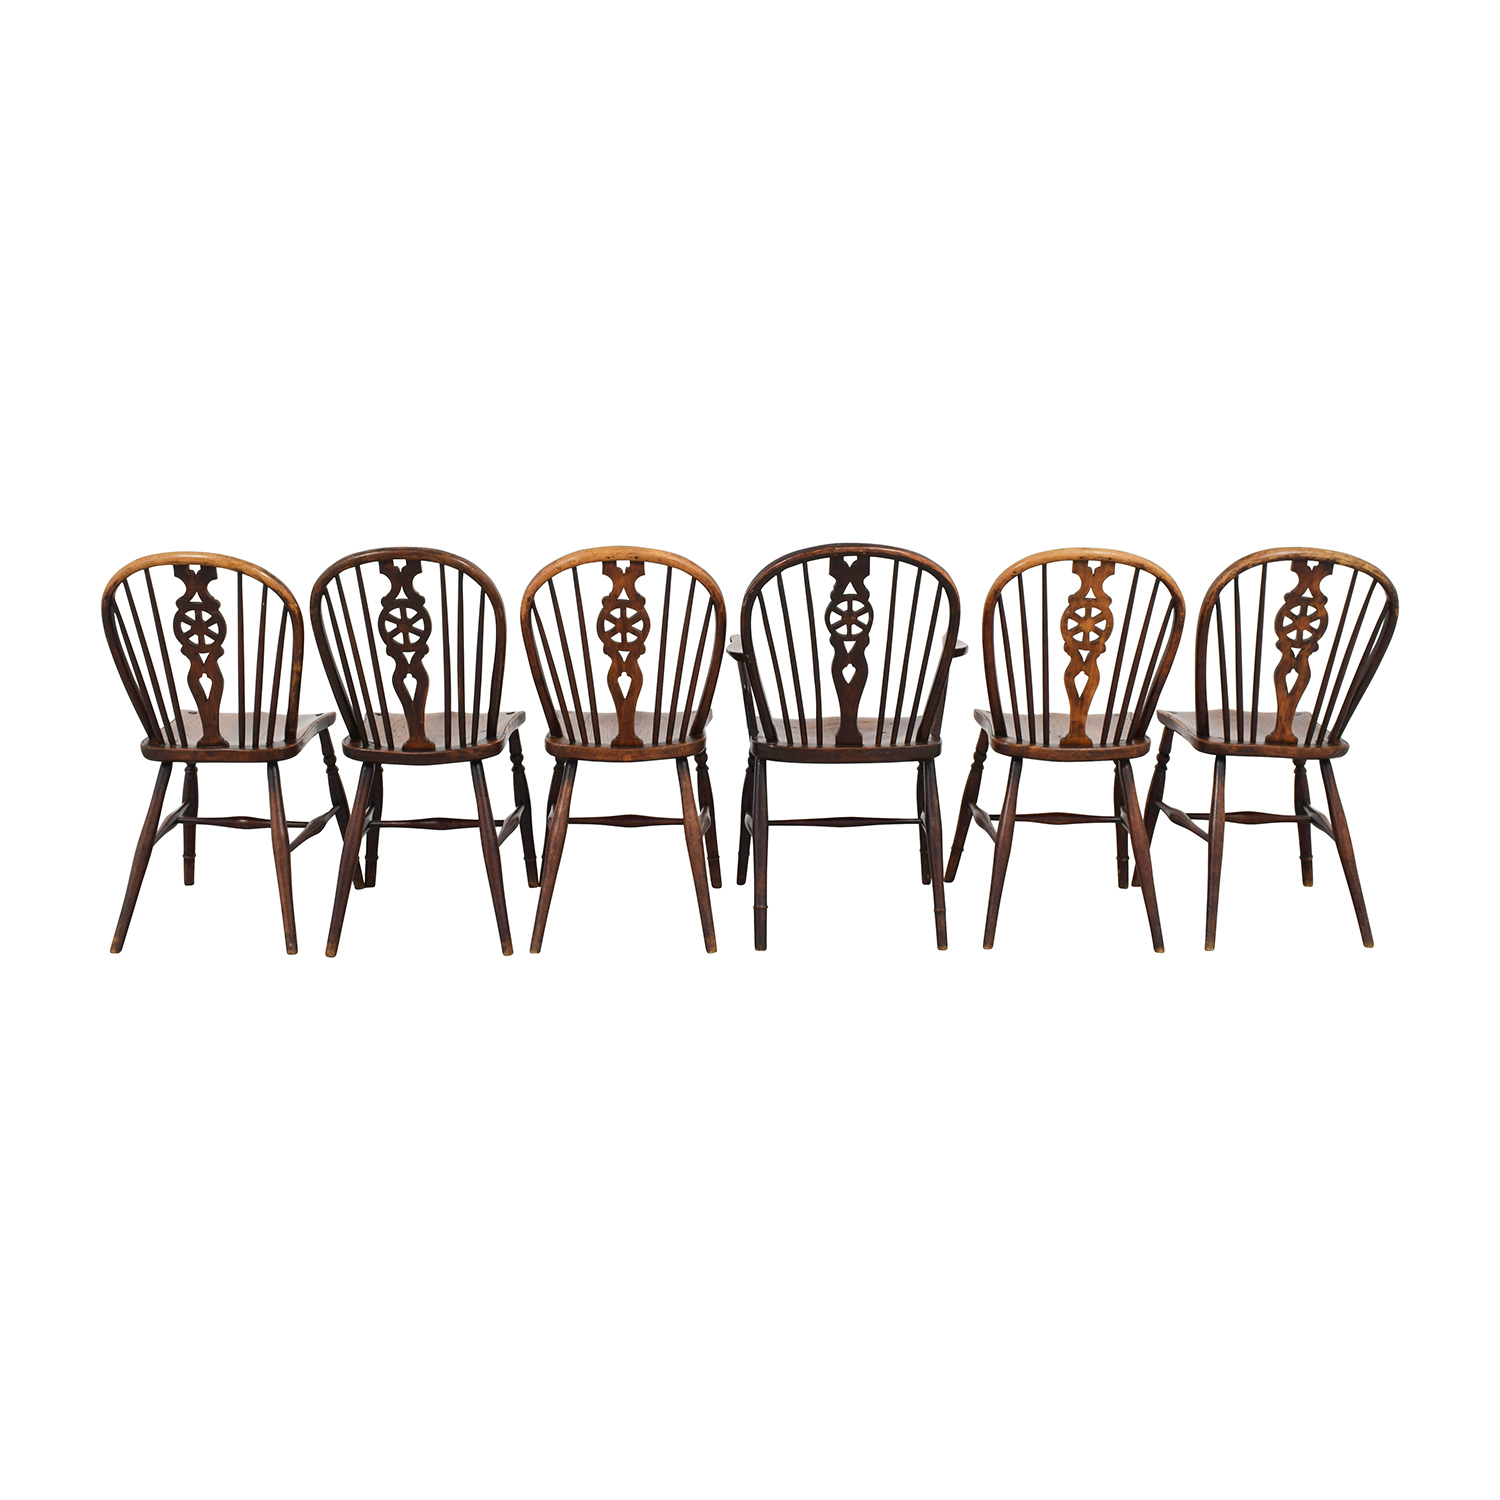 Tim Wharton Antiques Tim Wharton Antiques Georgian Windsor Chairs for  sale  70  OFF   Tim Wharton Antiques Tim Wharton Antiques Georgian  . Antique Windsor Dining Chairs For Sale. Home Design Ideas